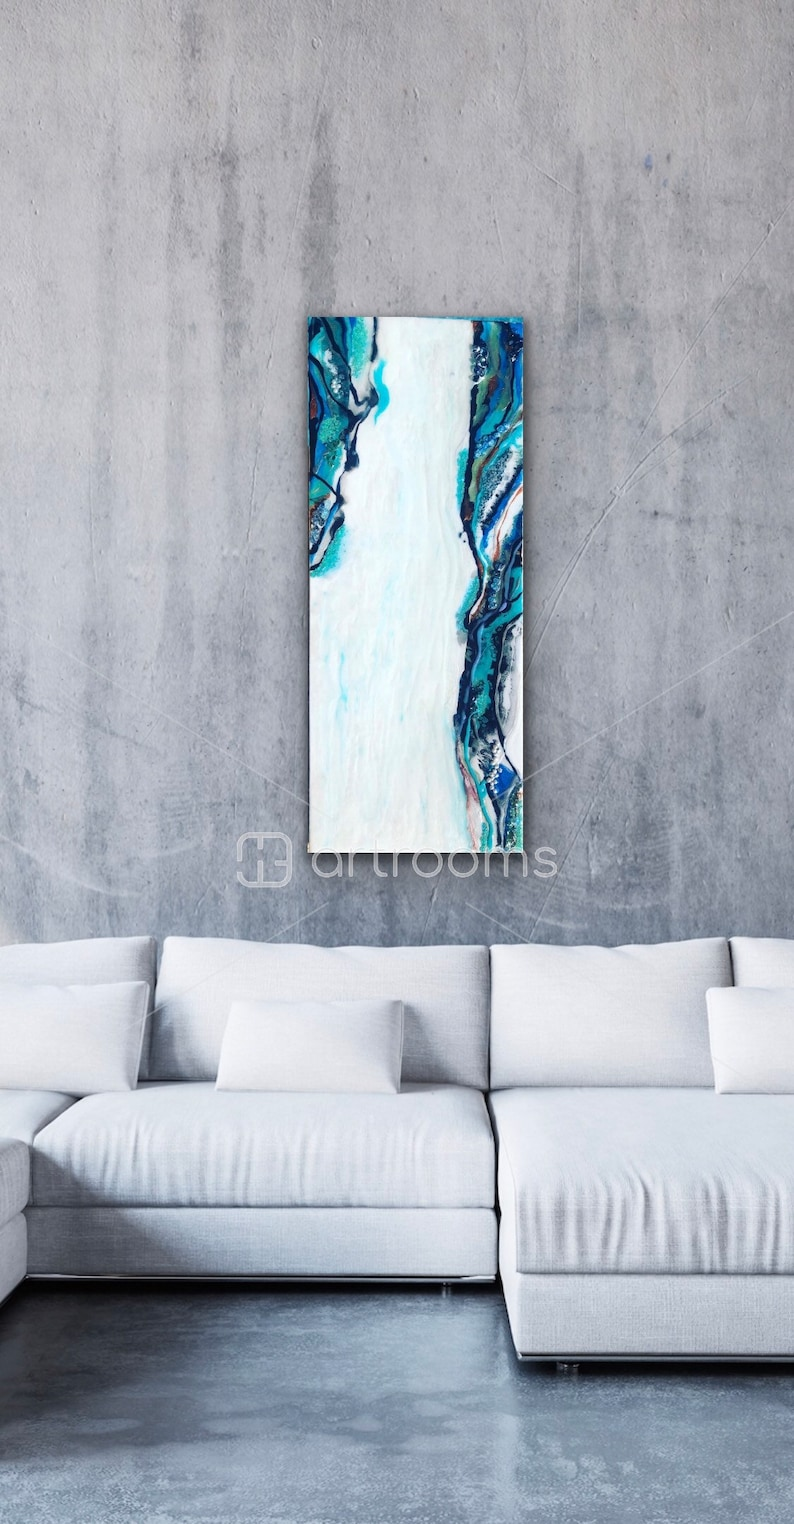 Home Decor Wall Decor. Home Accents Resin crystals white Unique Spring Art blue blue and black with real pearls Geode Painting